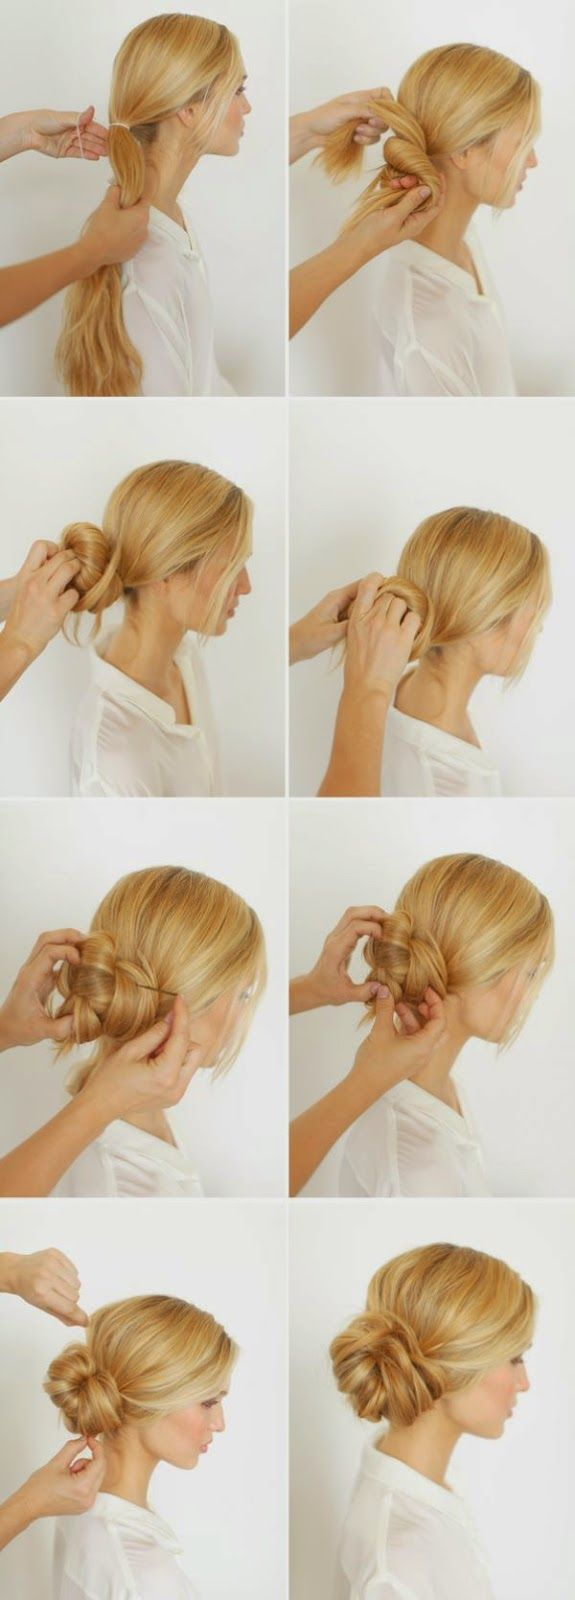 How to Chic: KNOTTED BUN TUTORIAL